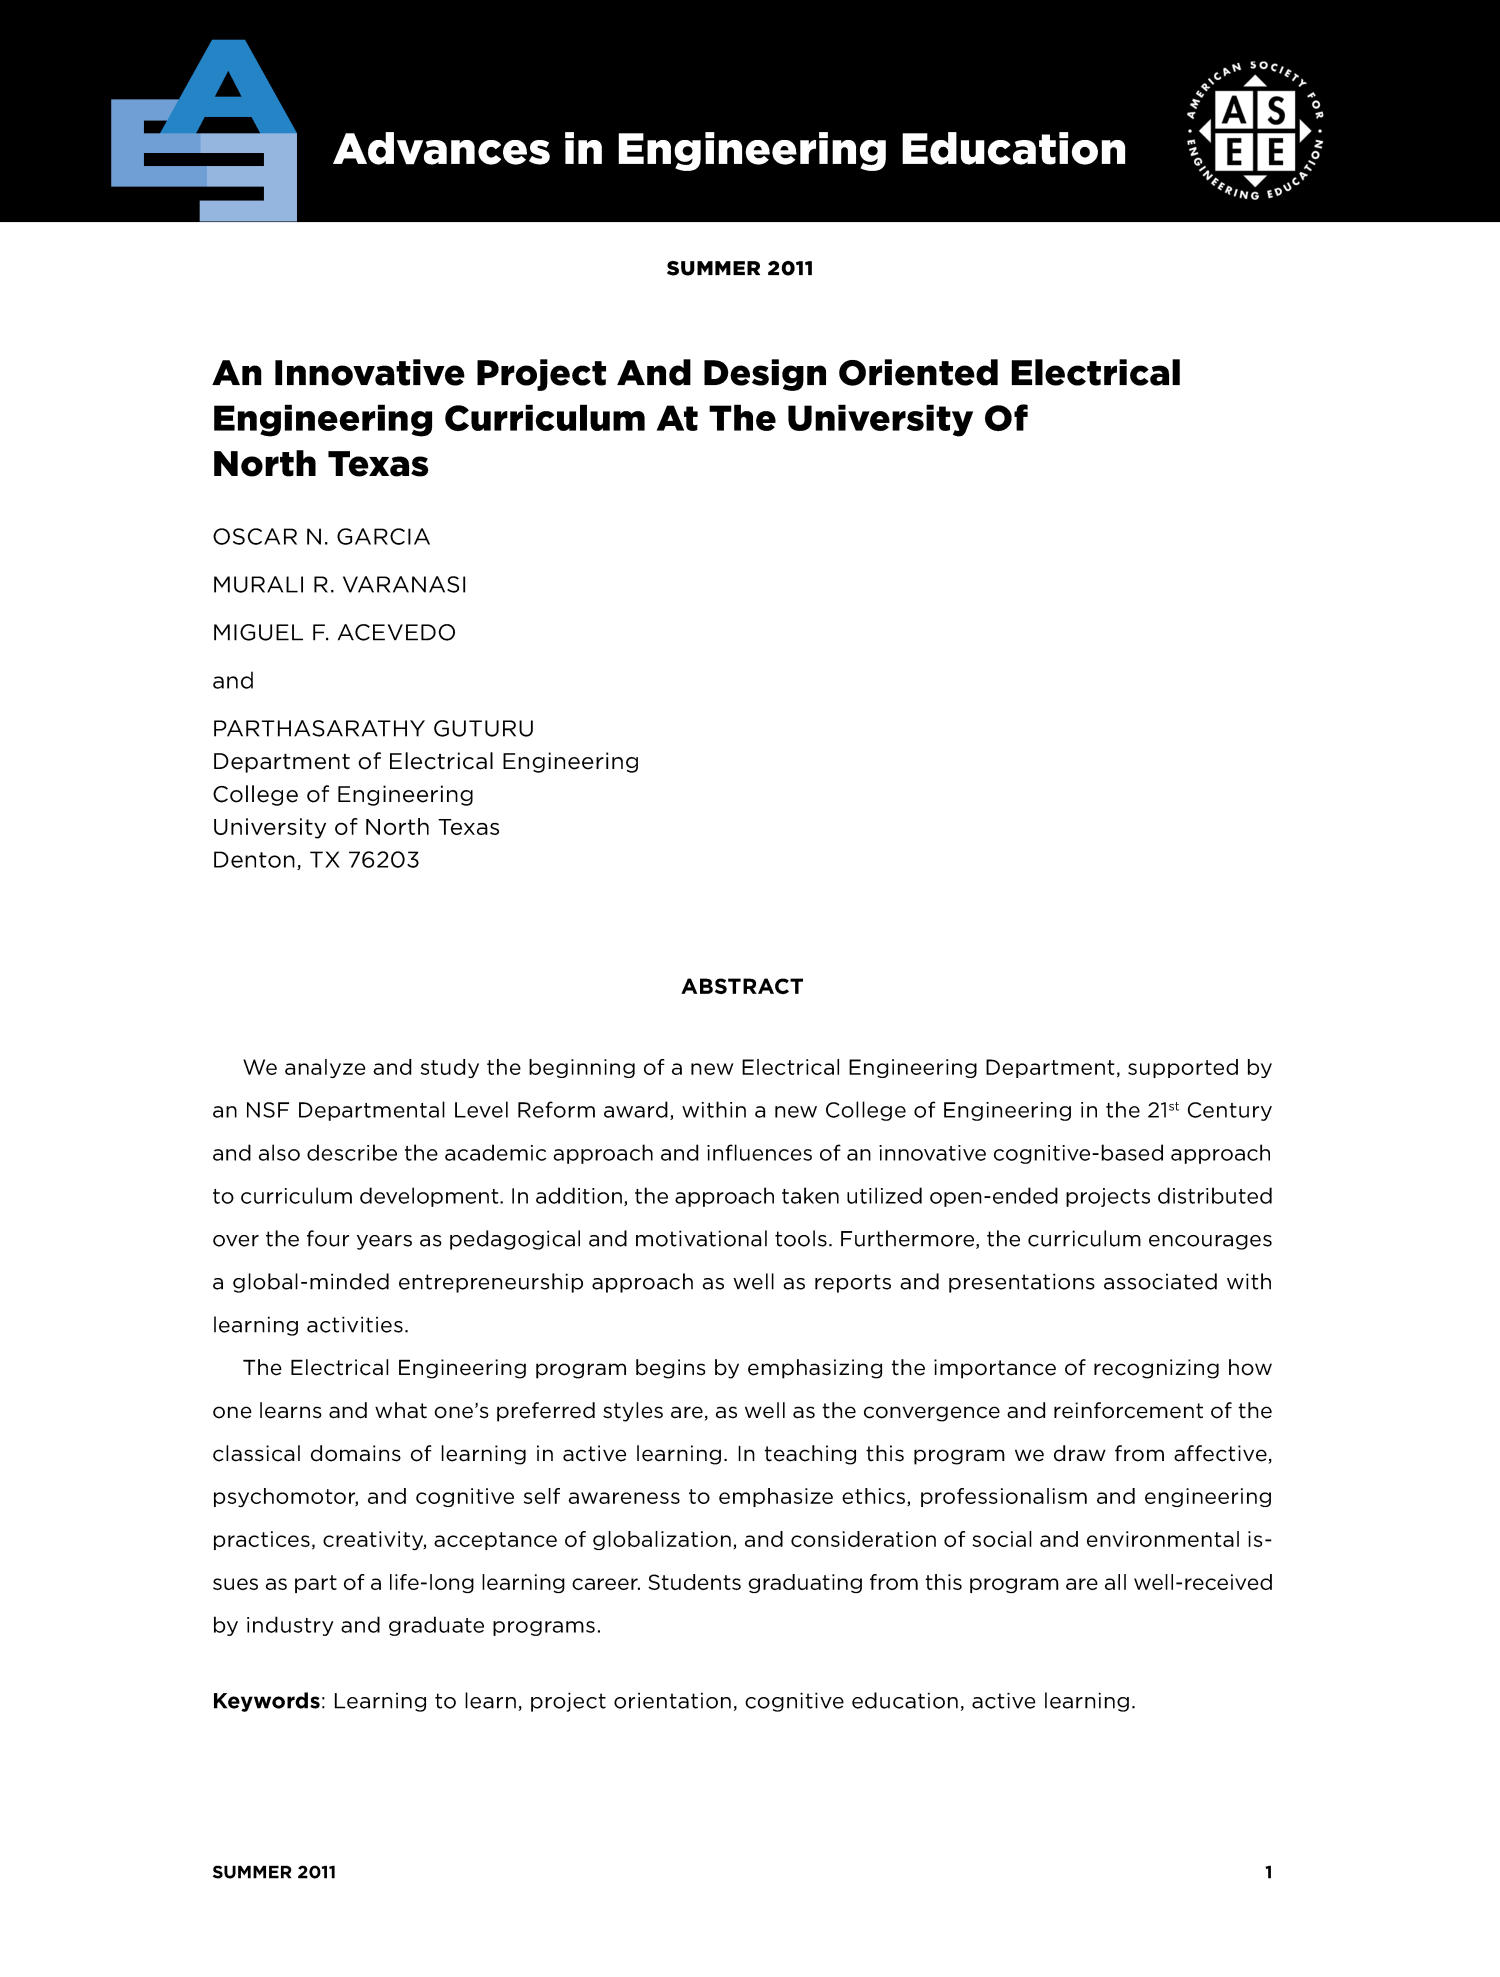 Engineering Design Curriculum : An innovative project and design oriented electrical